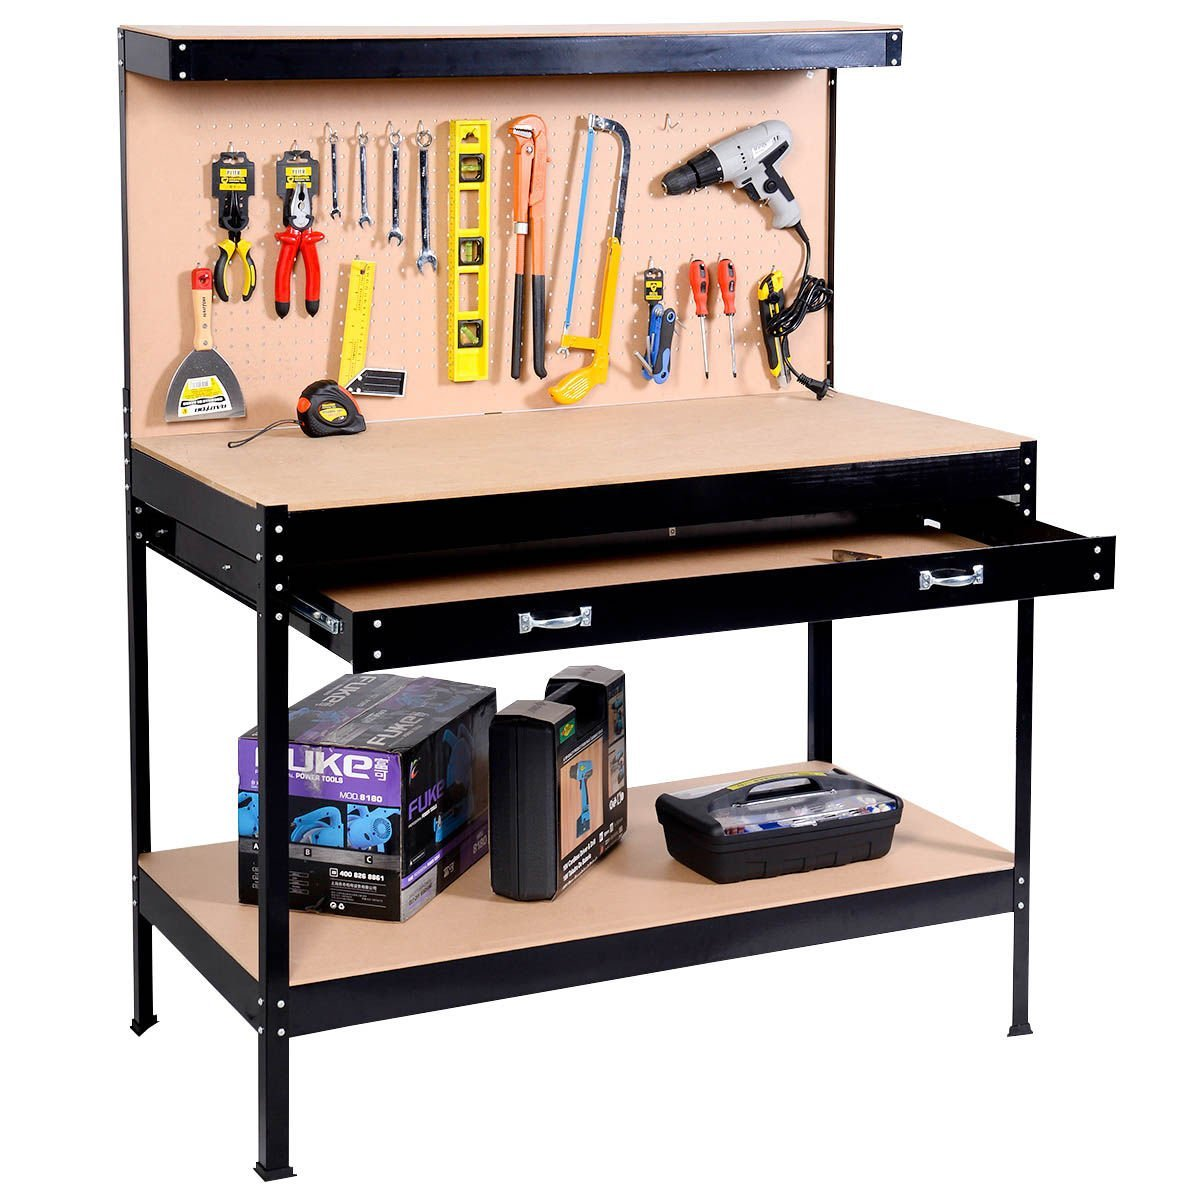 Work Bench Tool Storage Steel Frame Tool Workshop Table W/ Drawer and Peg Boar